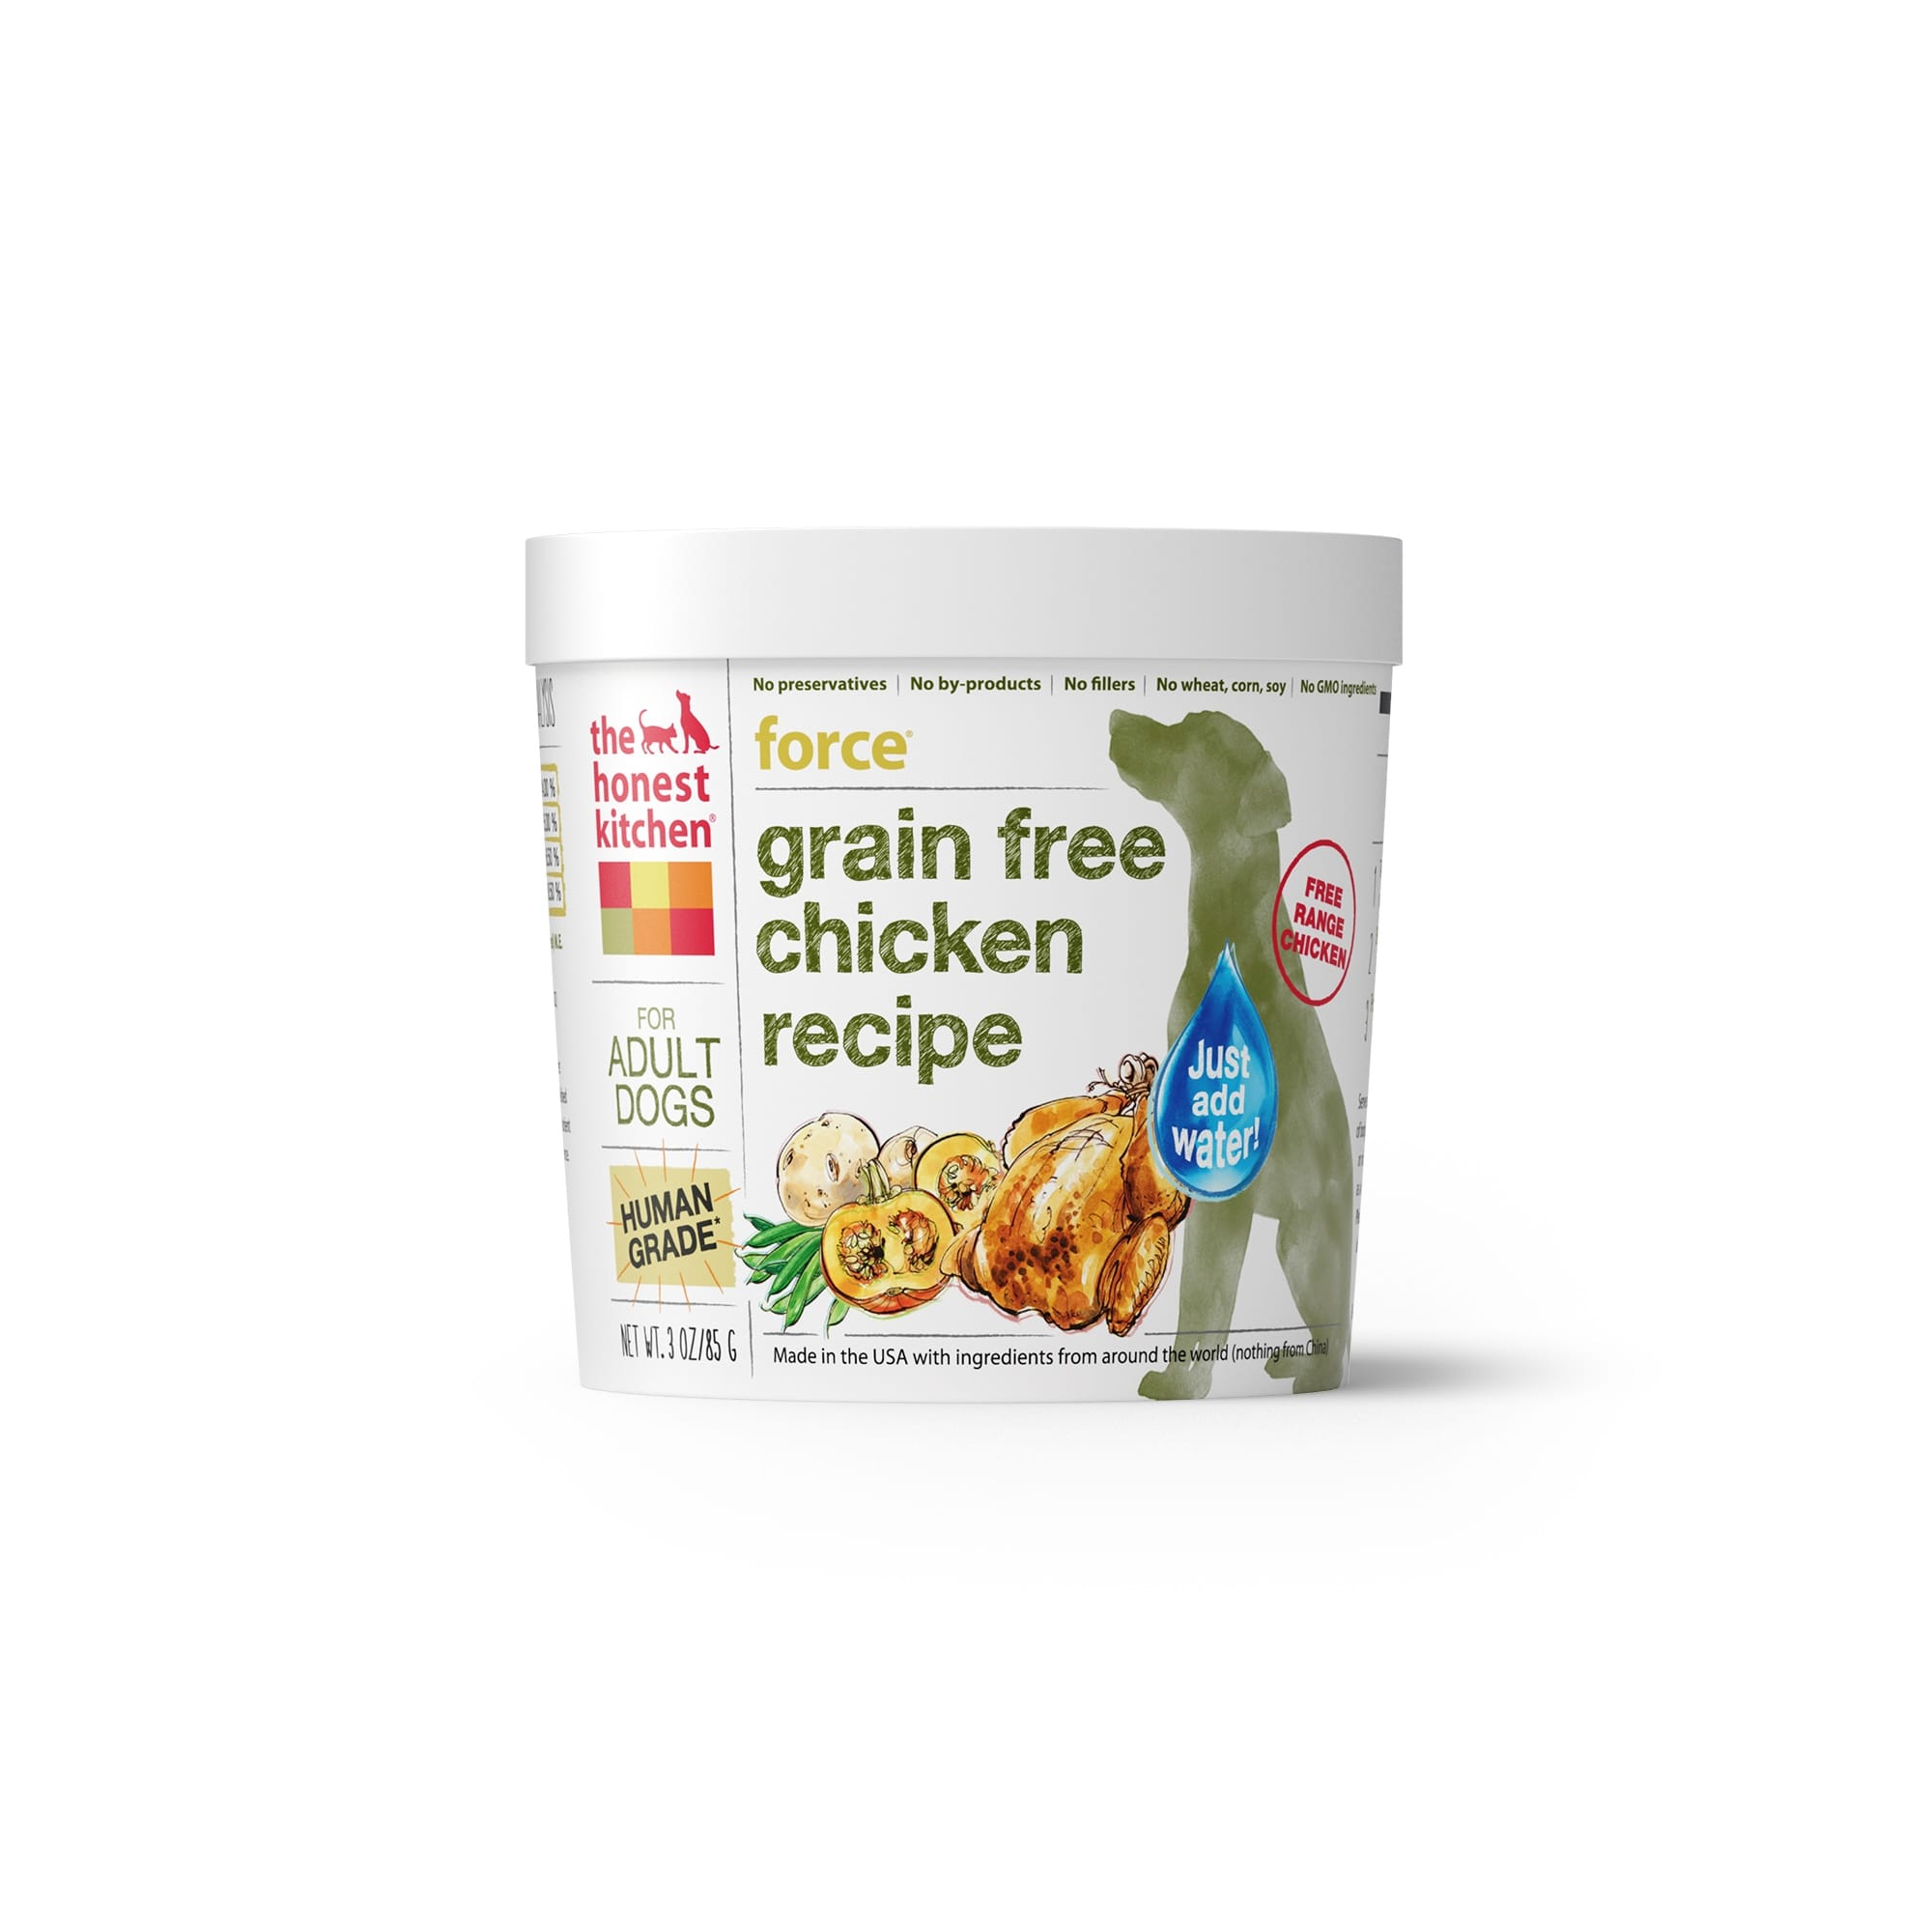 DEHYDRATED-GRAIN-FREE-CHICKEN-SINGLE-SERVE-CUP